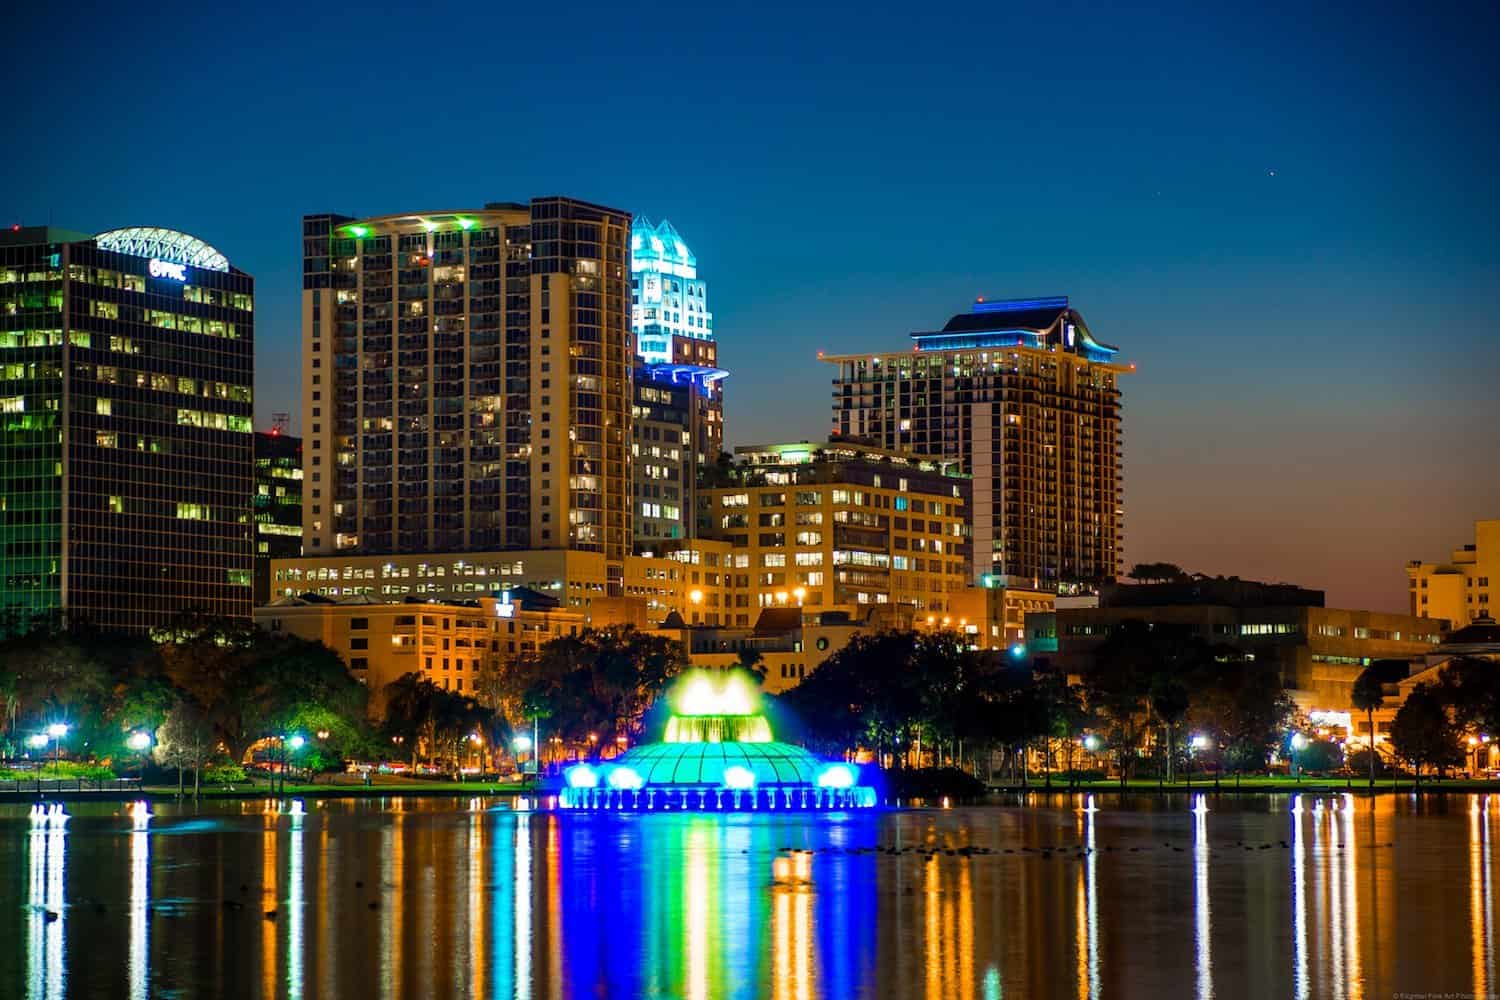 Stargazing in Orlando - Downtown Orlando at Sunset - Ricardo Mangual via Flickr